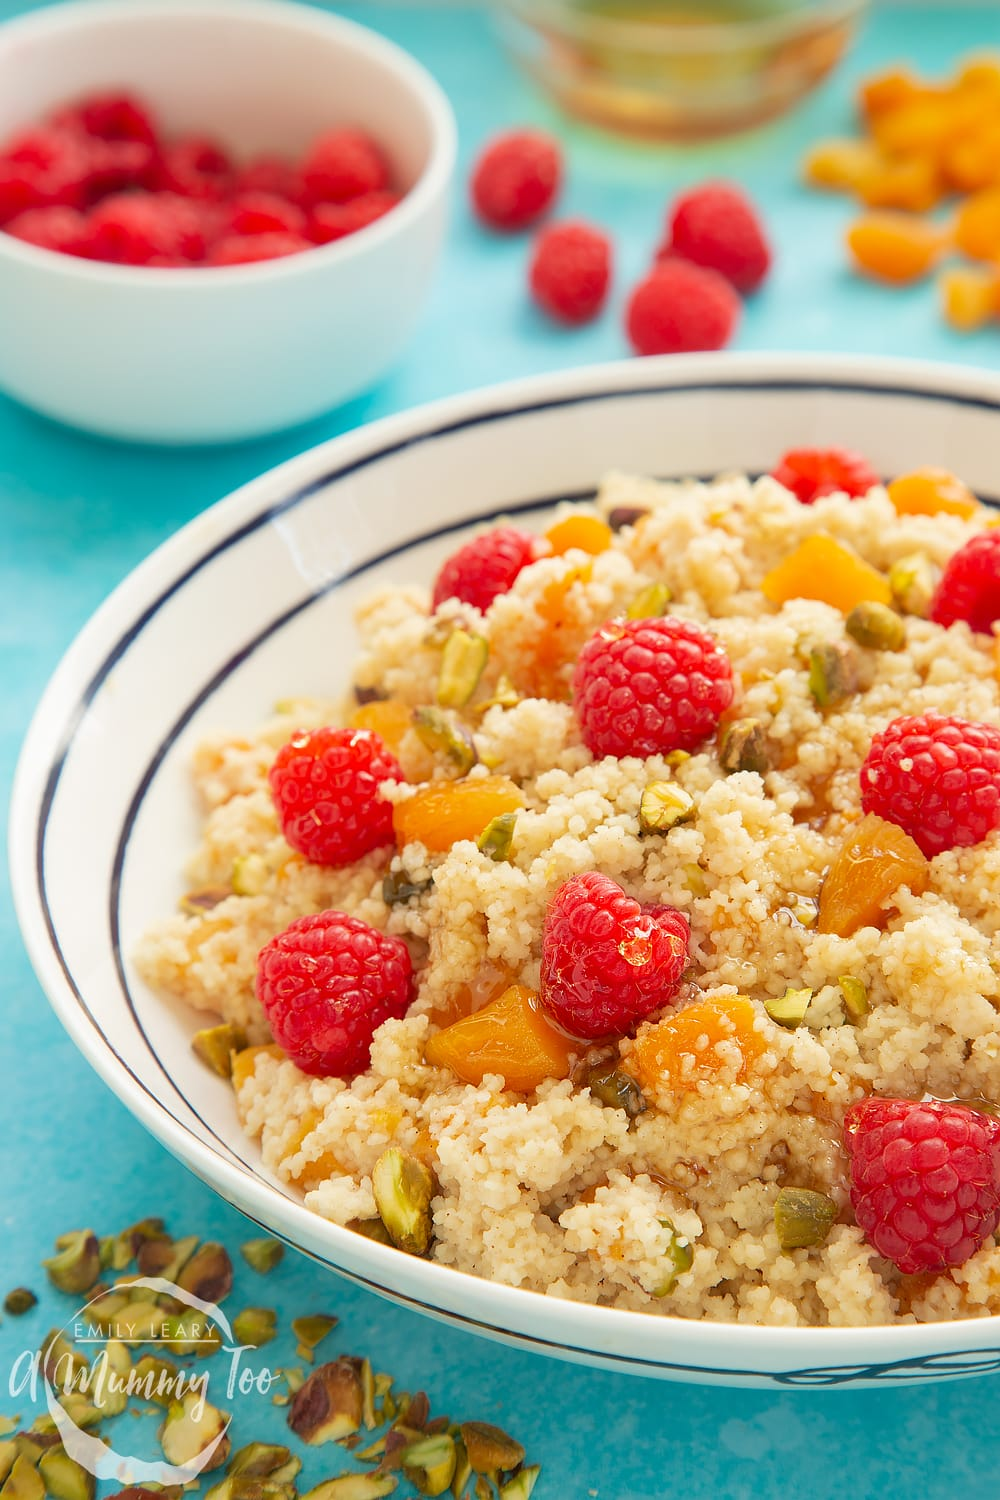 Close up shot of the sweet breakfast couscous. In the background you can see the dried apricots and the raspberries.